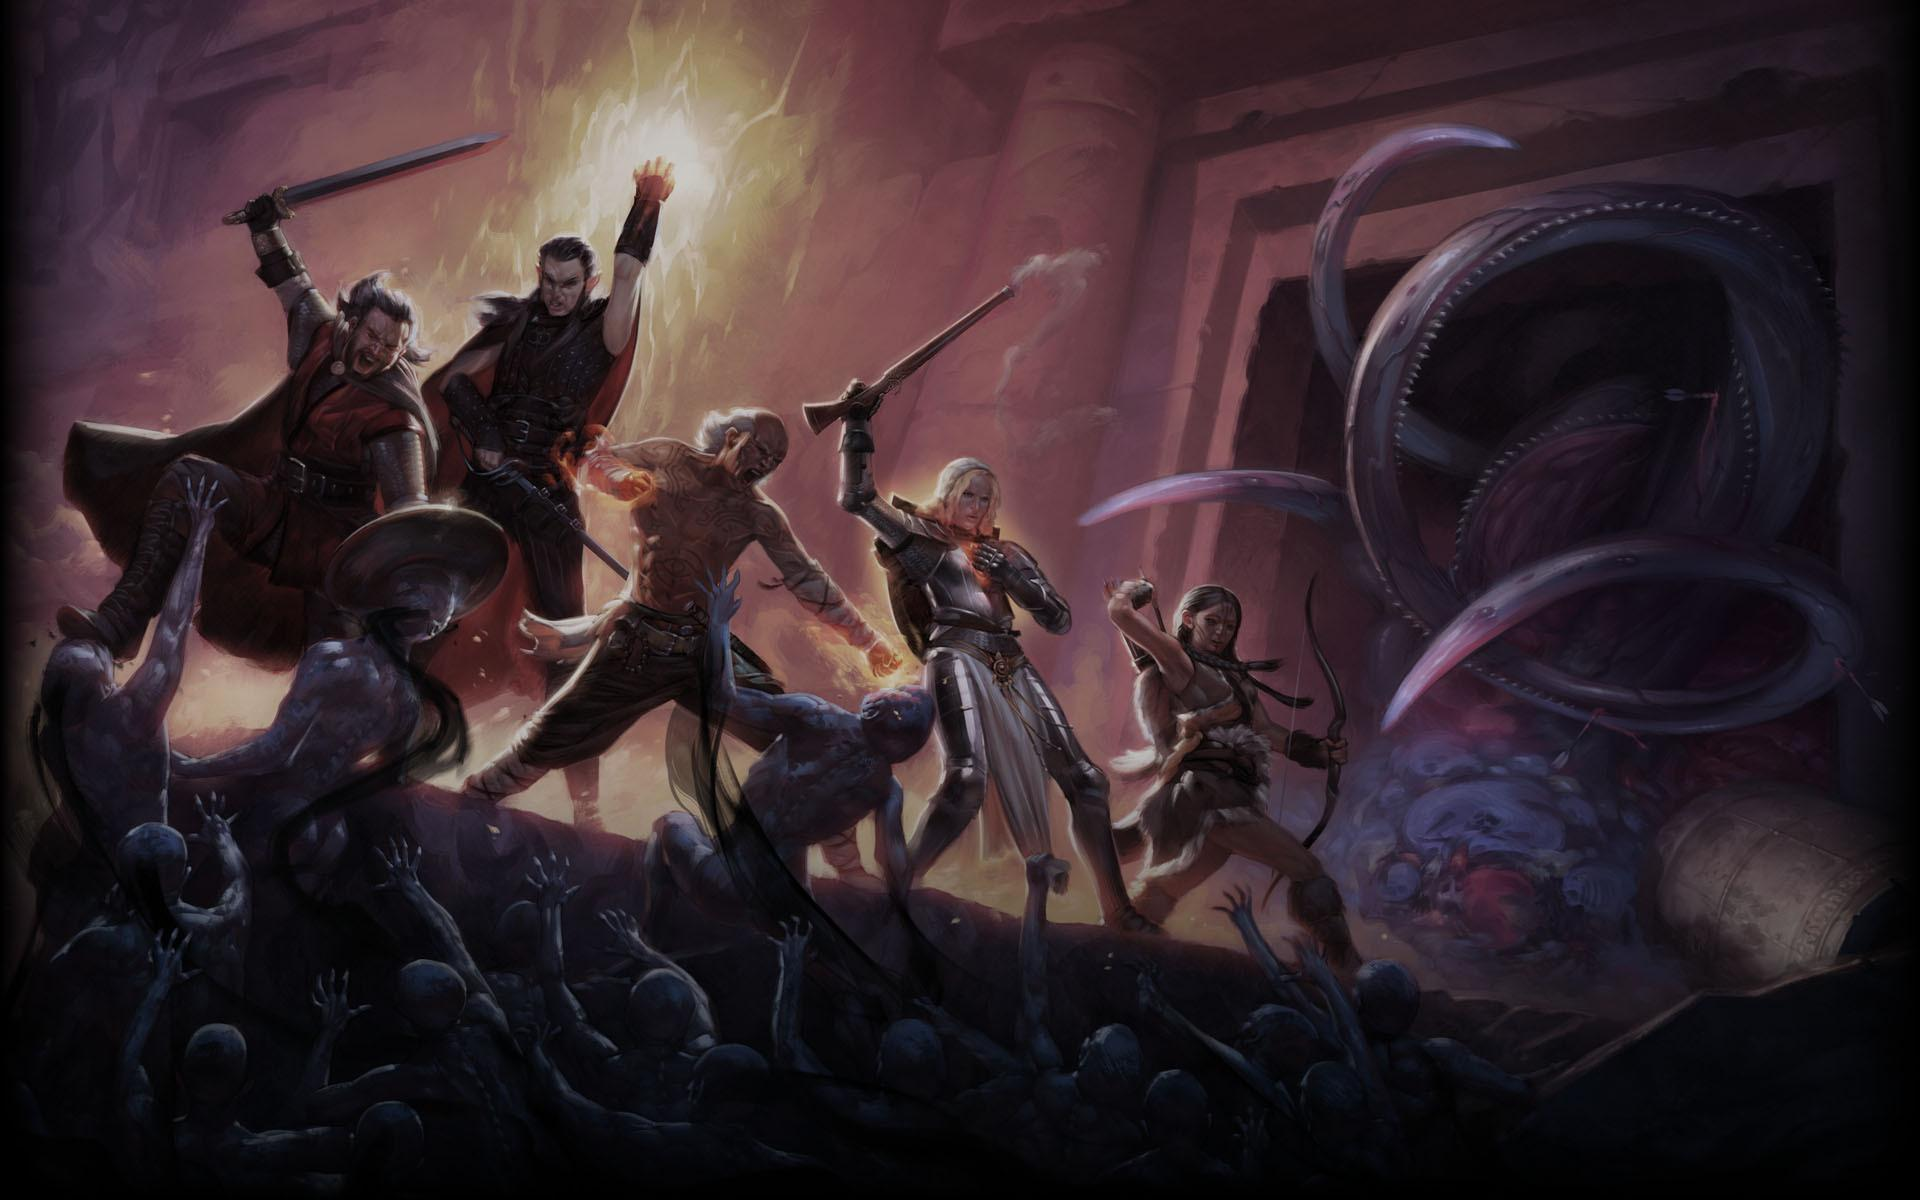 Pillars Of Eternity Wallpaper: Pillars Of Eternity Wallpaper HD Download